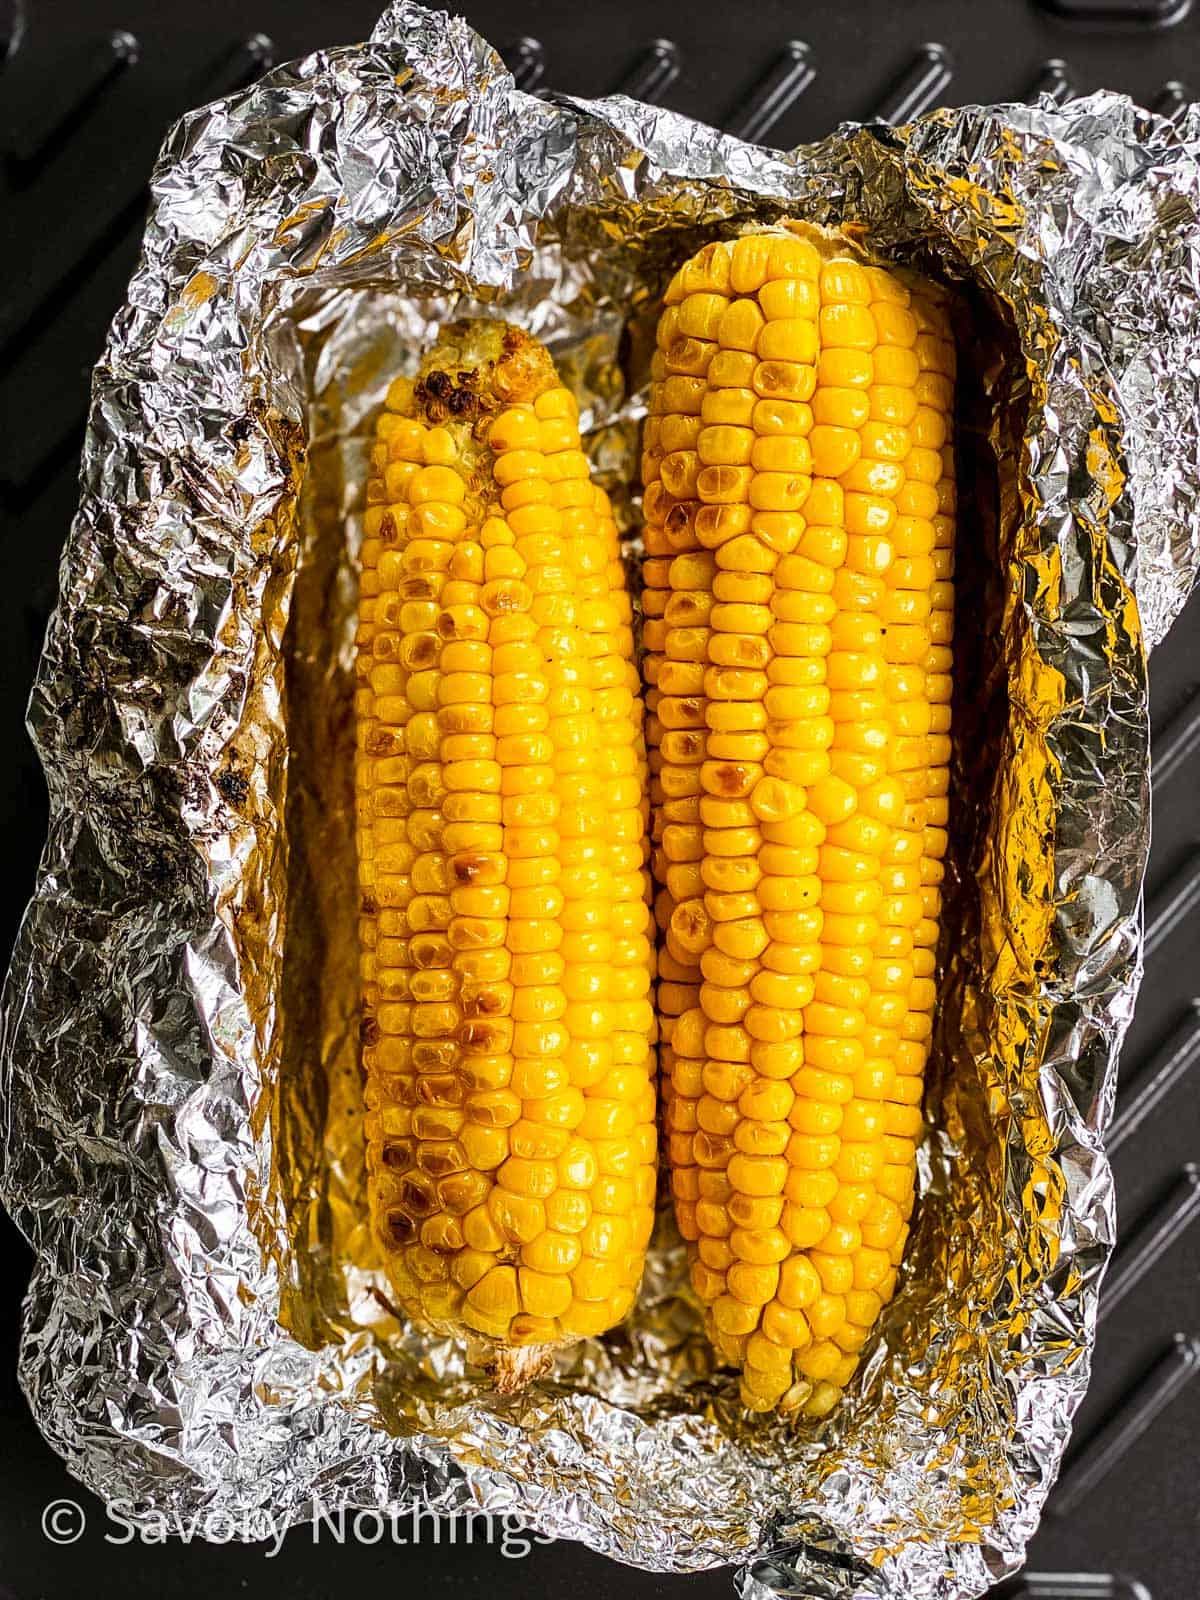 charred corn on the cob in opened foil packet on grill